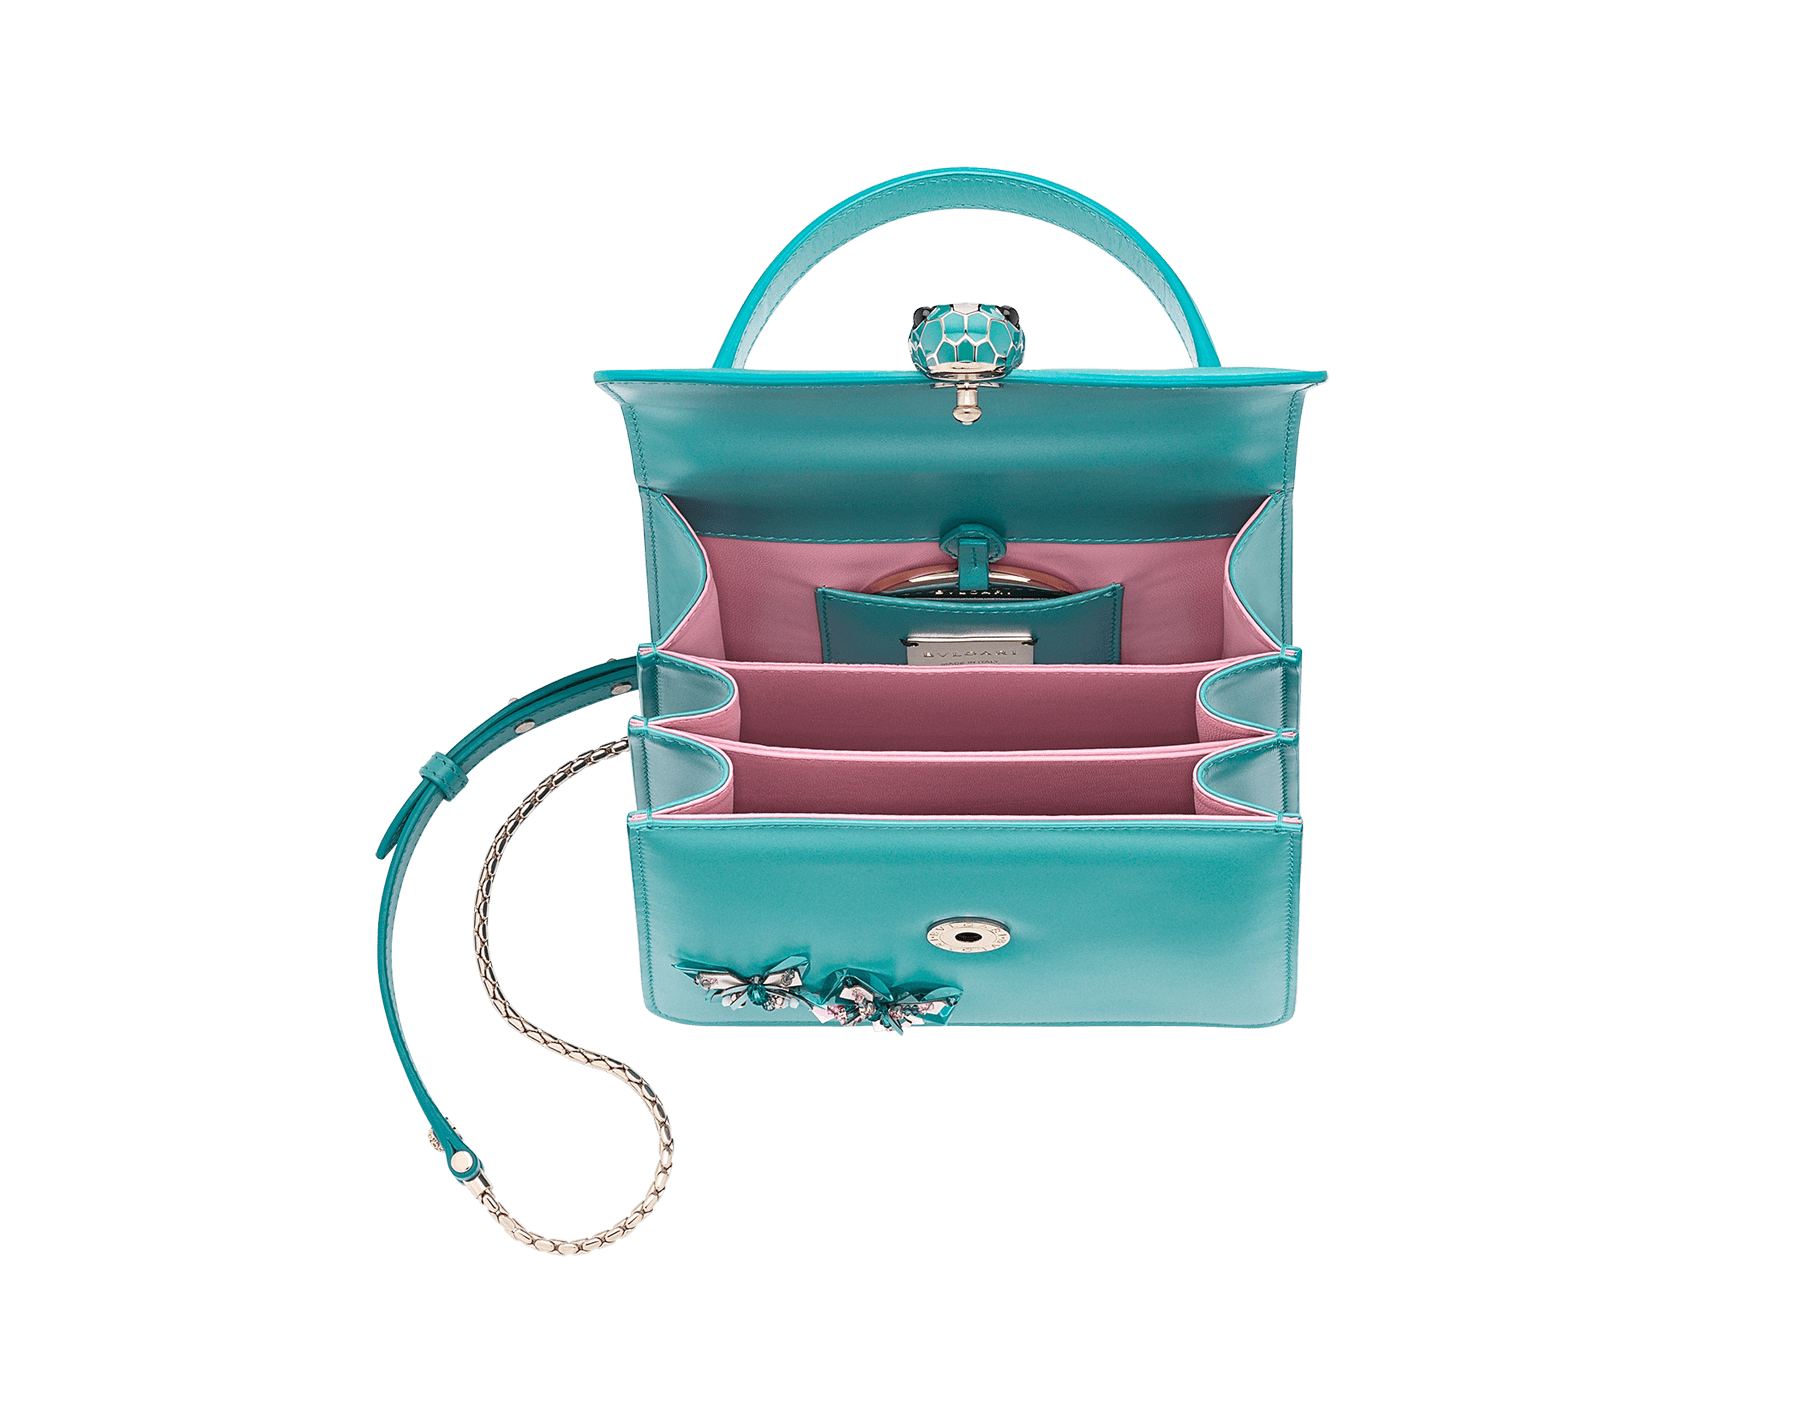 """""""Serpenti Forever """" crossbody bag in arctic jade calf leather with two arctic jade butterflies embroidered. Iconic snakehead closure in light gold plated brass enriched with arctic jade and white agate enamel and black onyx eyes. 289249 image 4"""